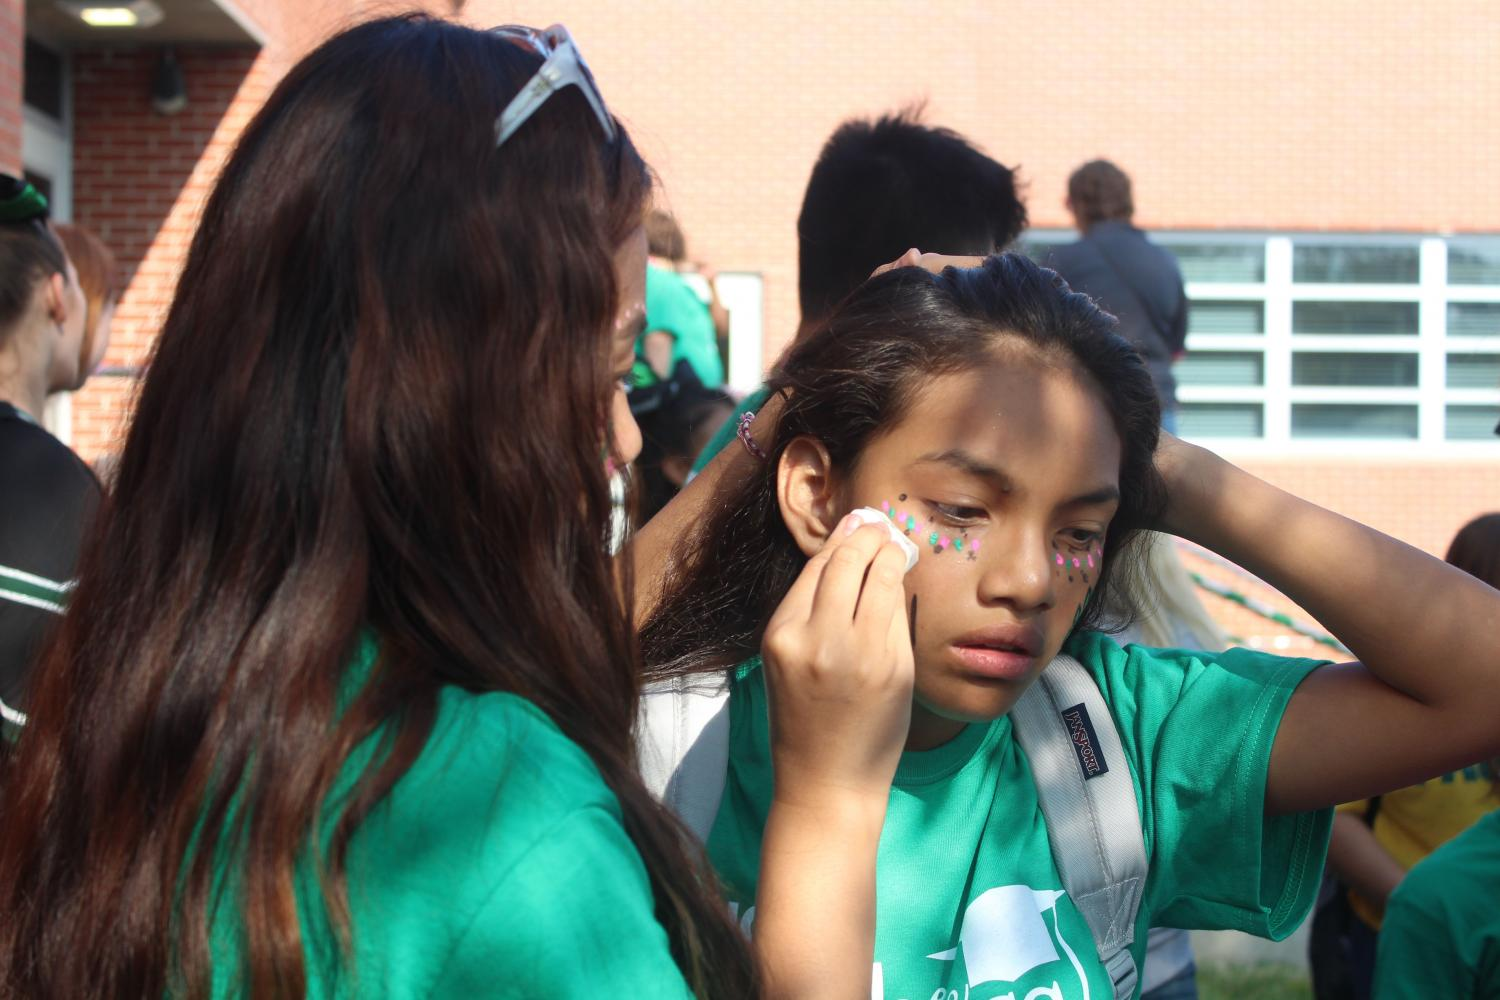 At+the+tailgate%2C+many+students+got+their+face+painted+showing+their+school+spirit.